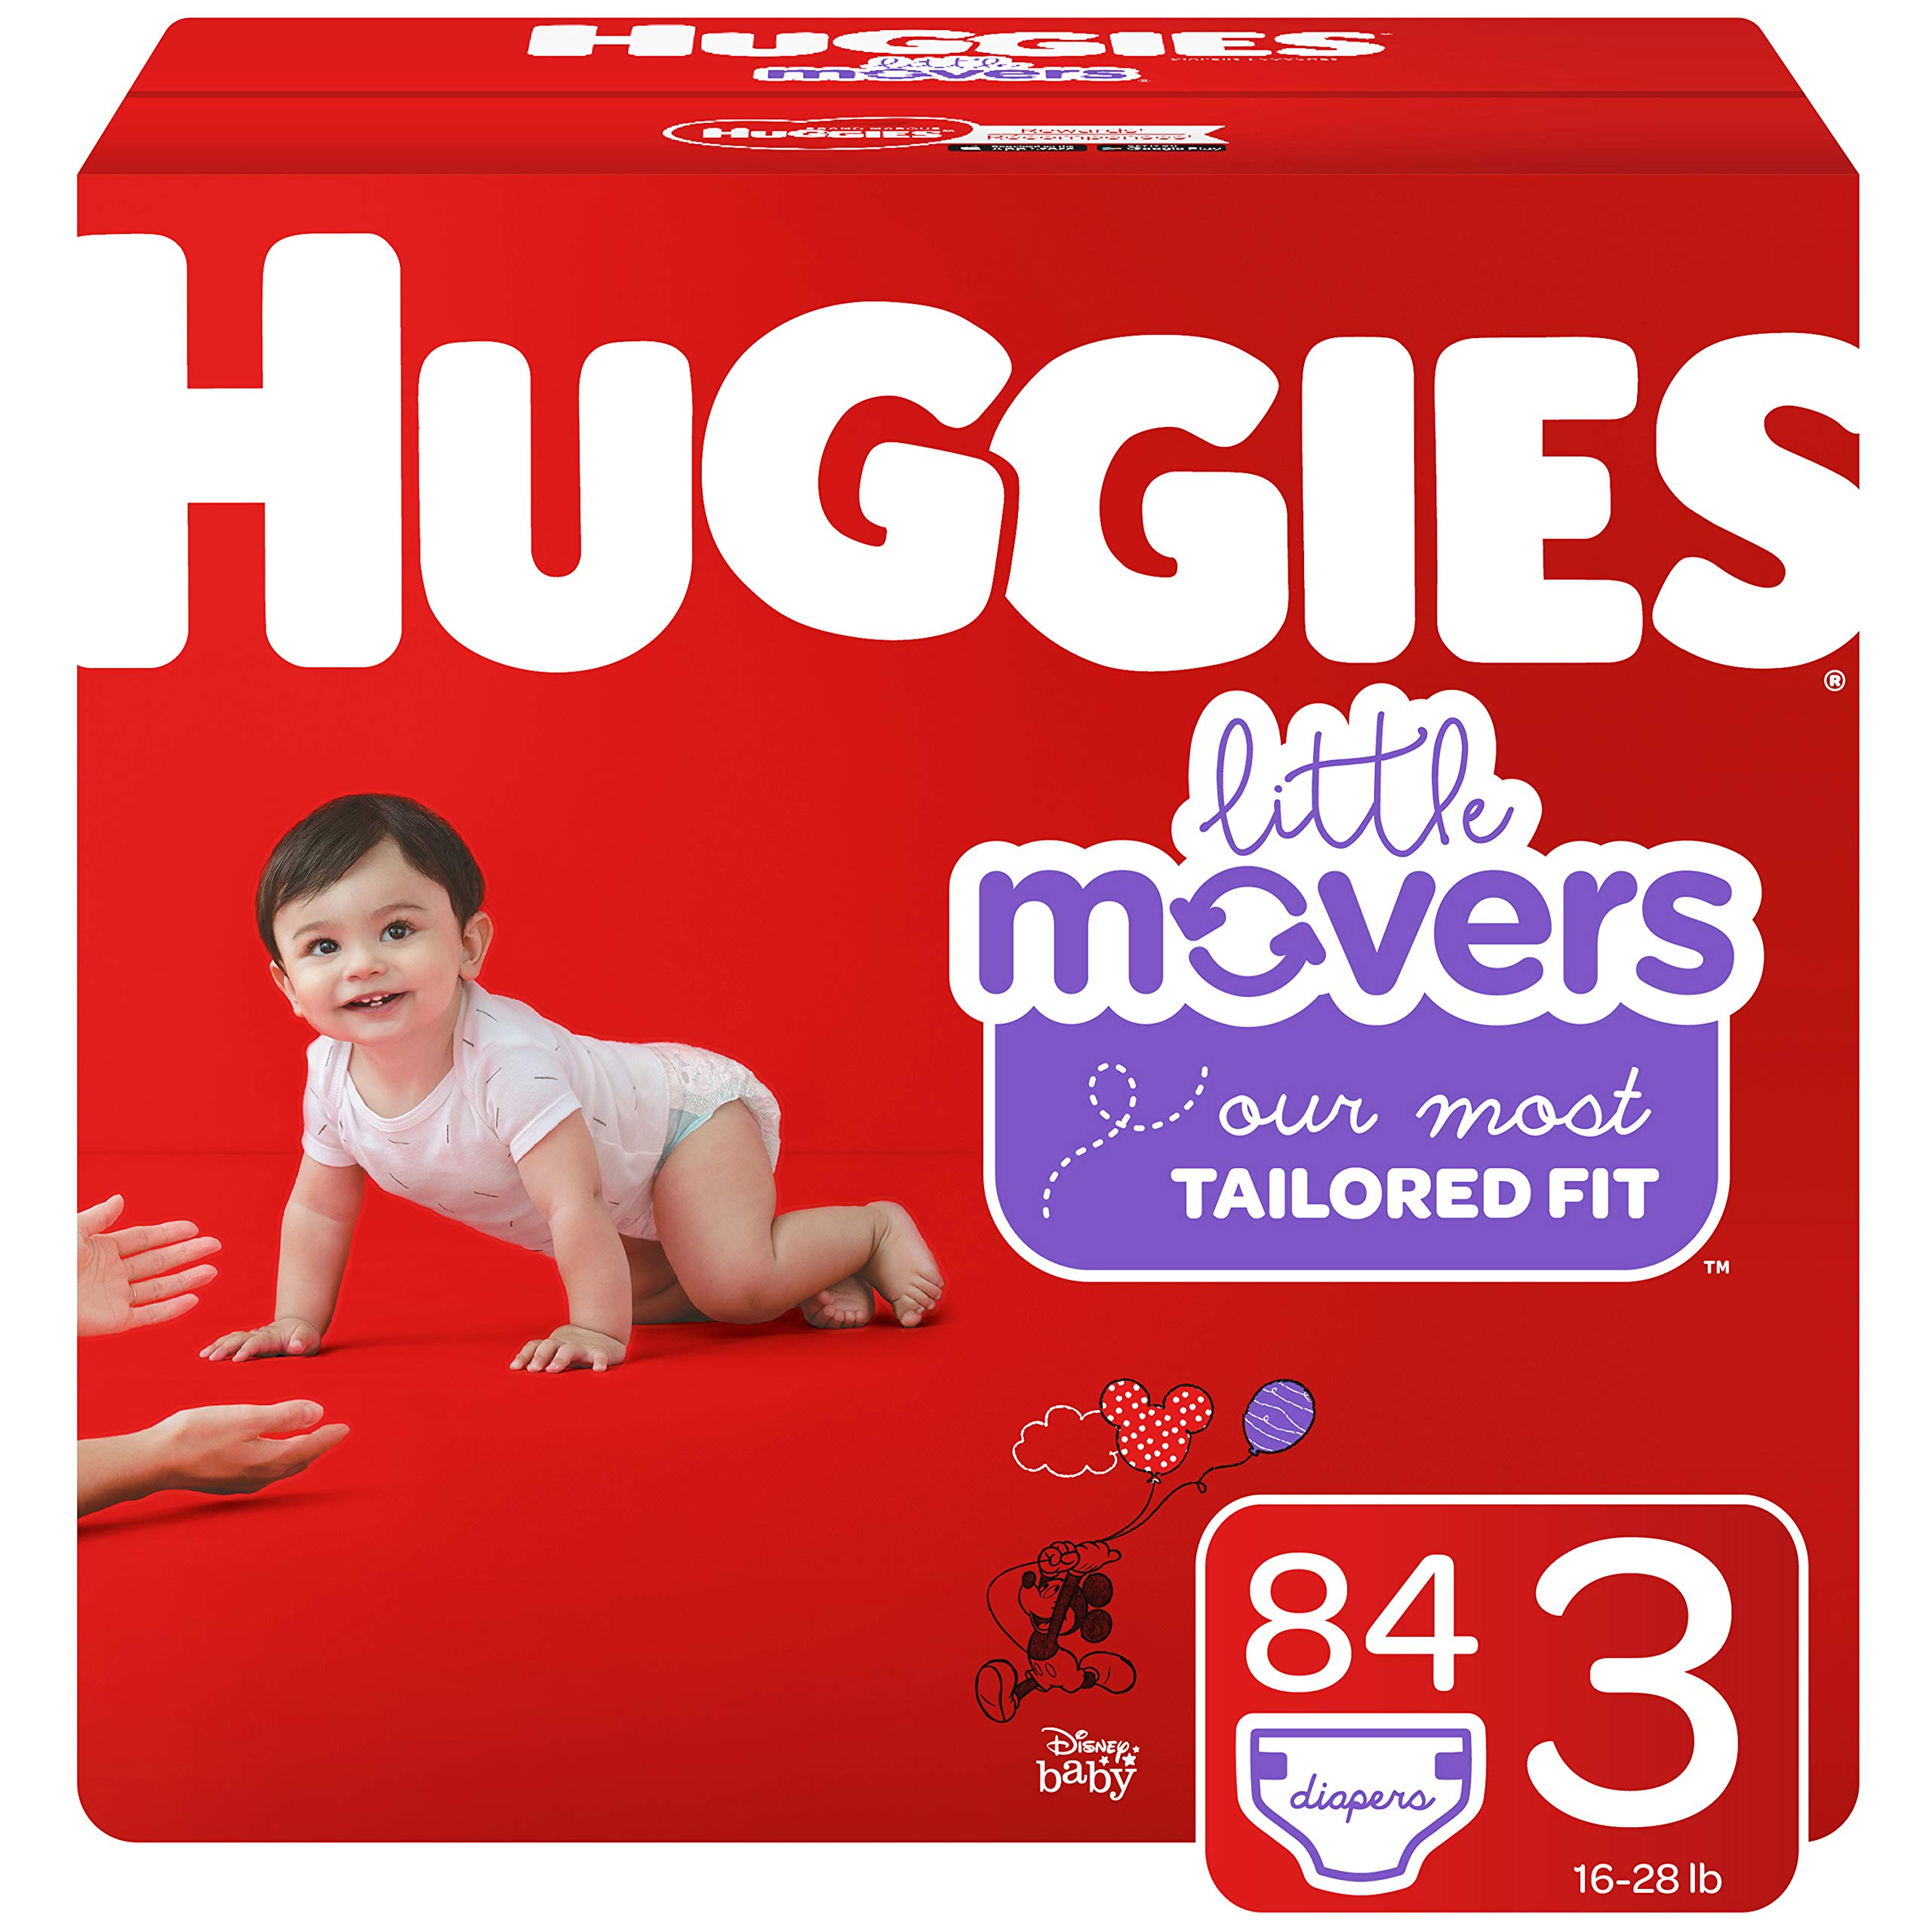 Huggies Little Movers Diapers, Size 3 (16-28 lb.), 84 Ct, Giga Jr Pack (Packaging May Vary) by HUGGIES